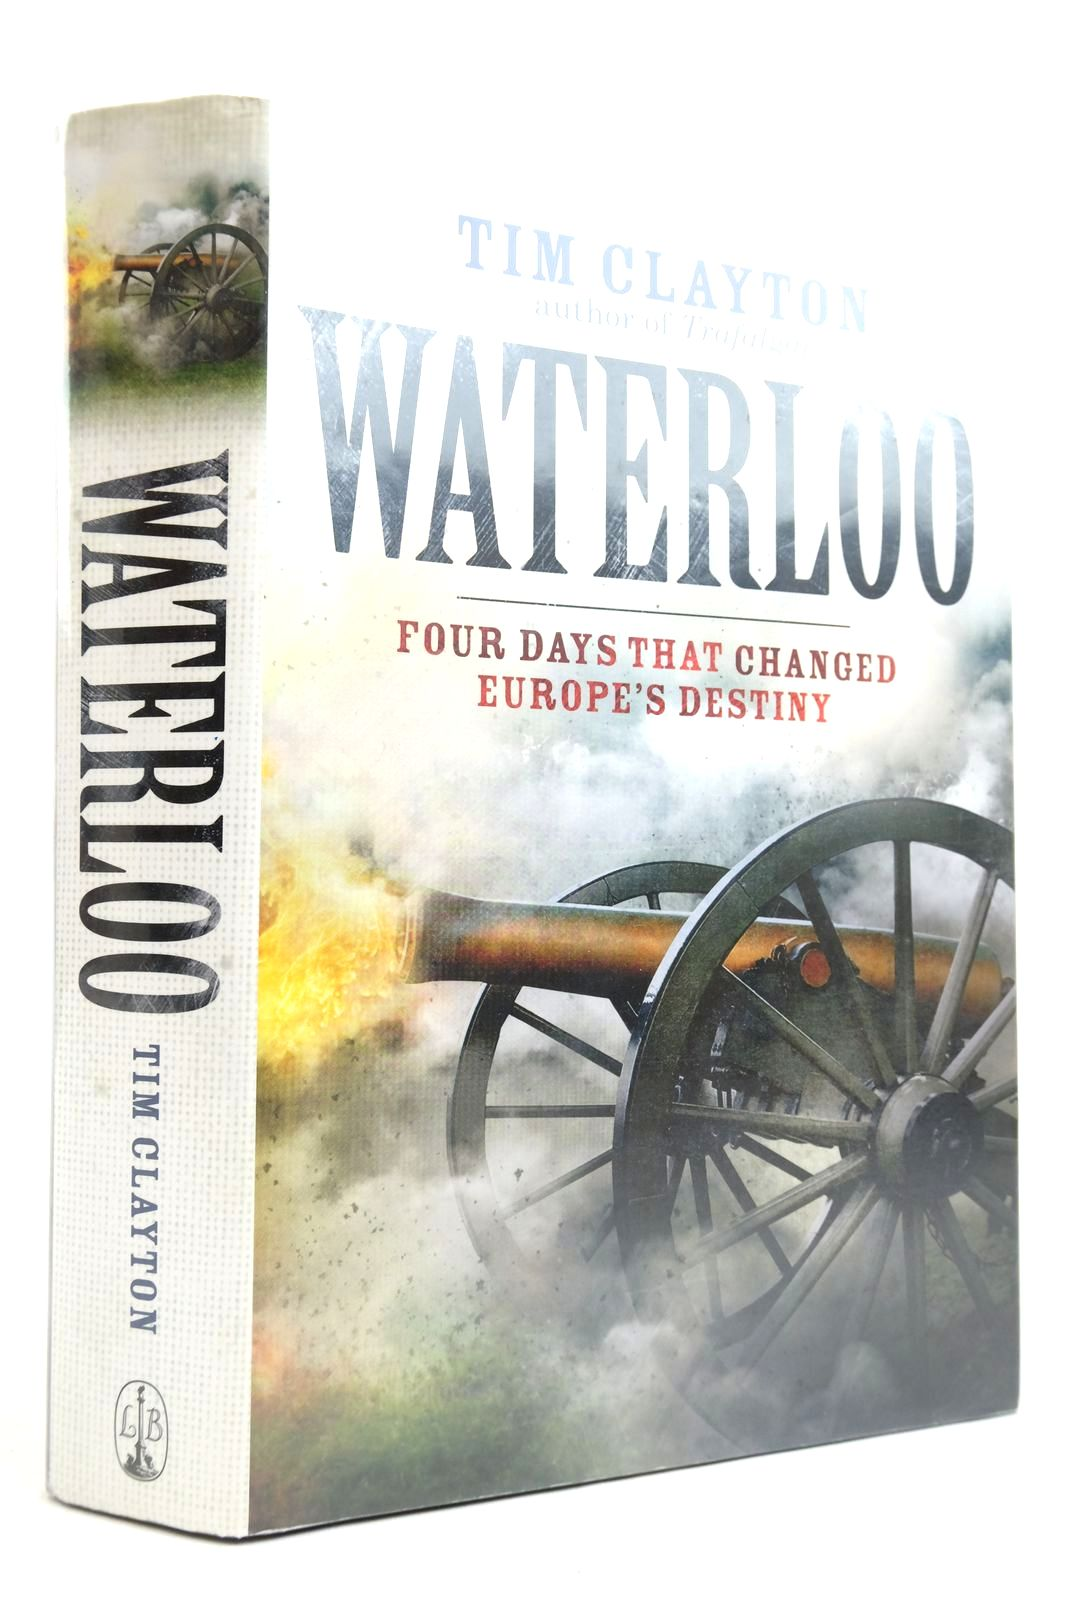 Photo of WATERLOO: FOUR DAYS THAT CHANGED EUROPE'S DESTINY- Stock Number: 2135392